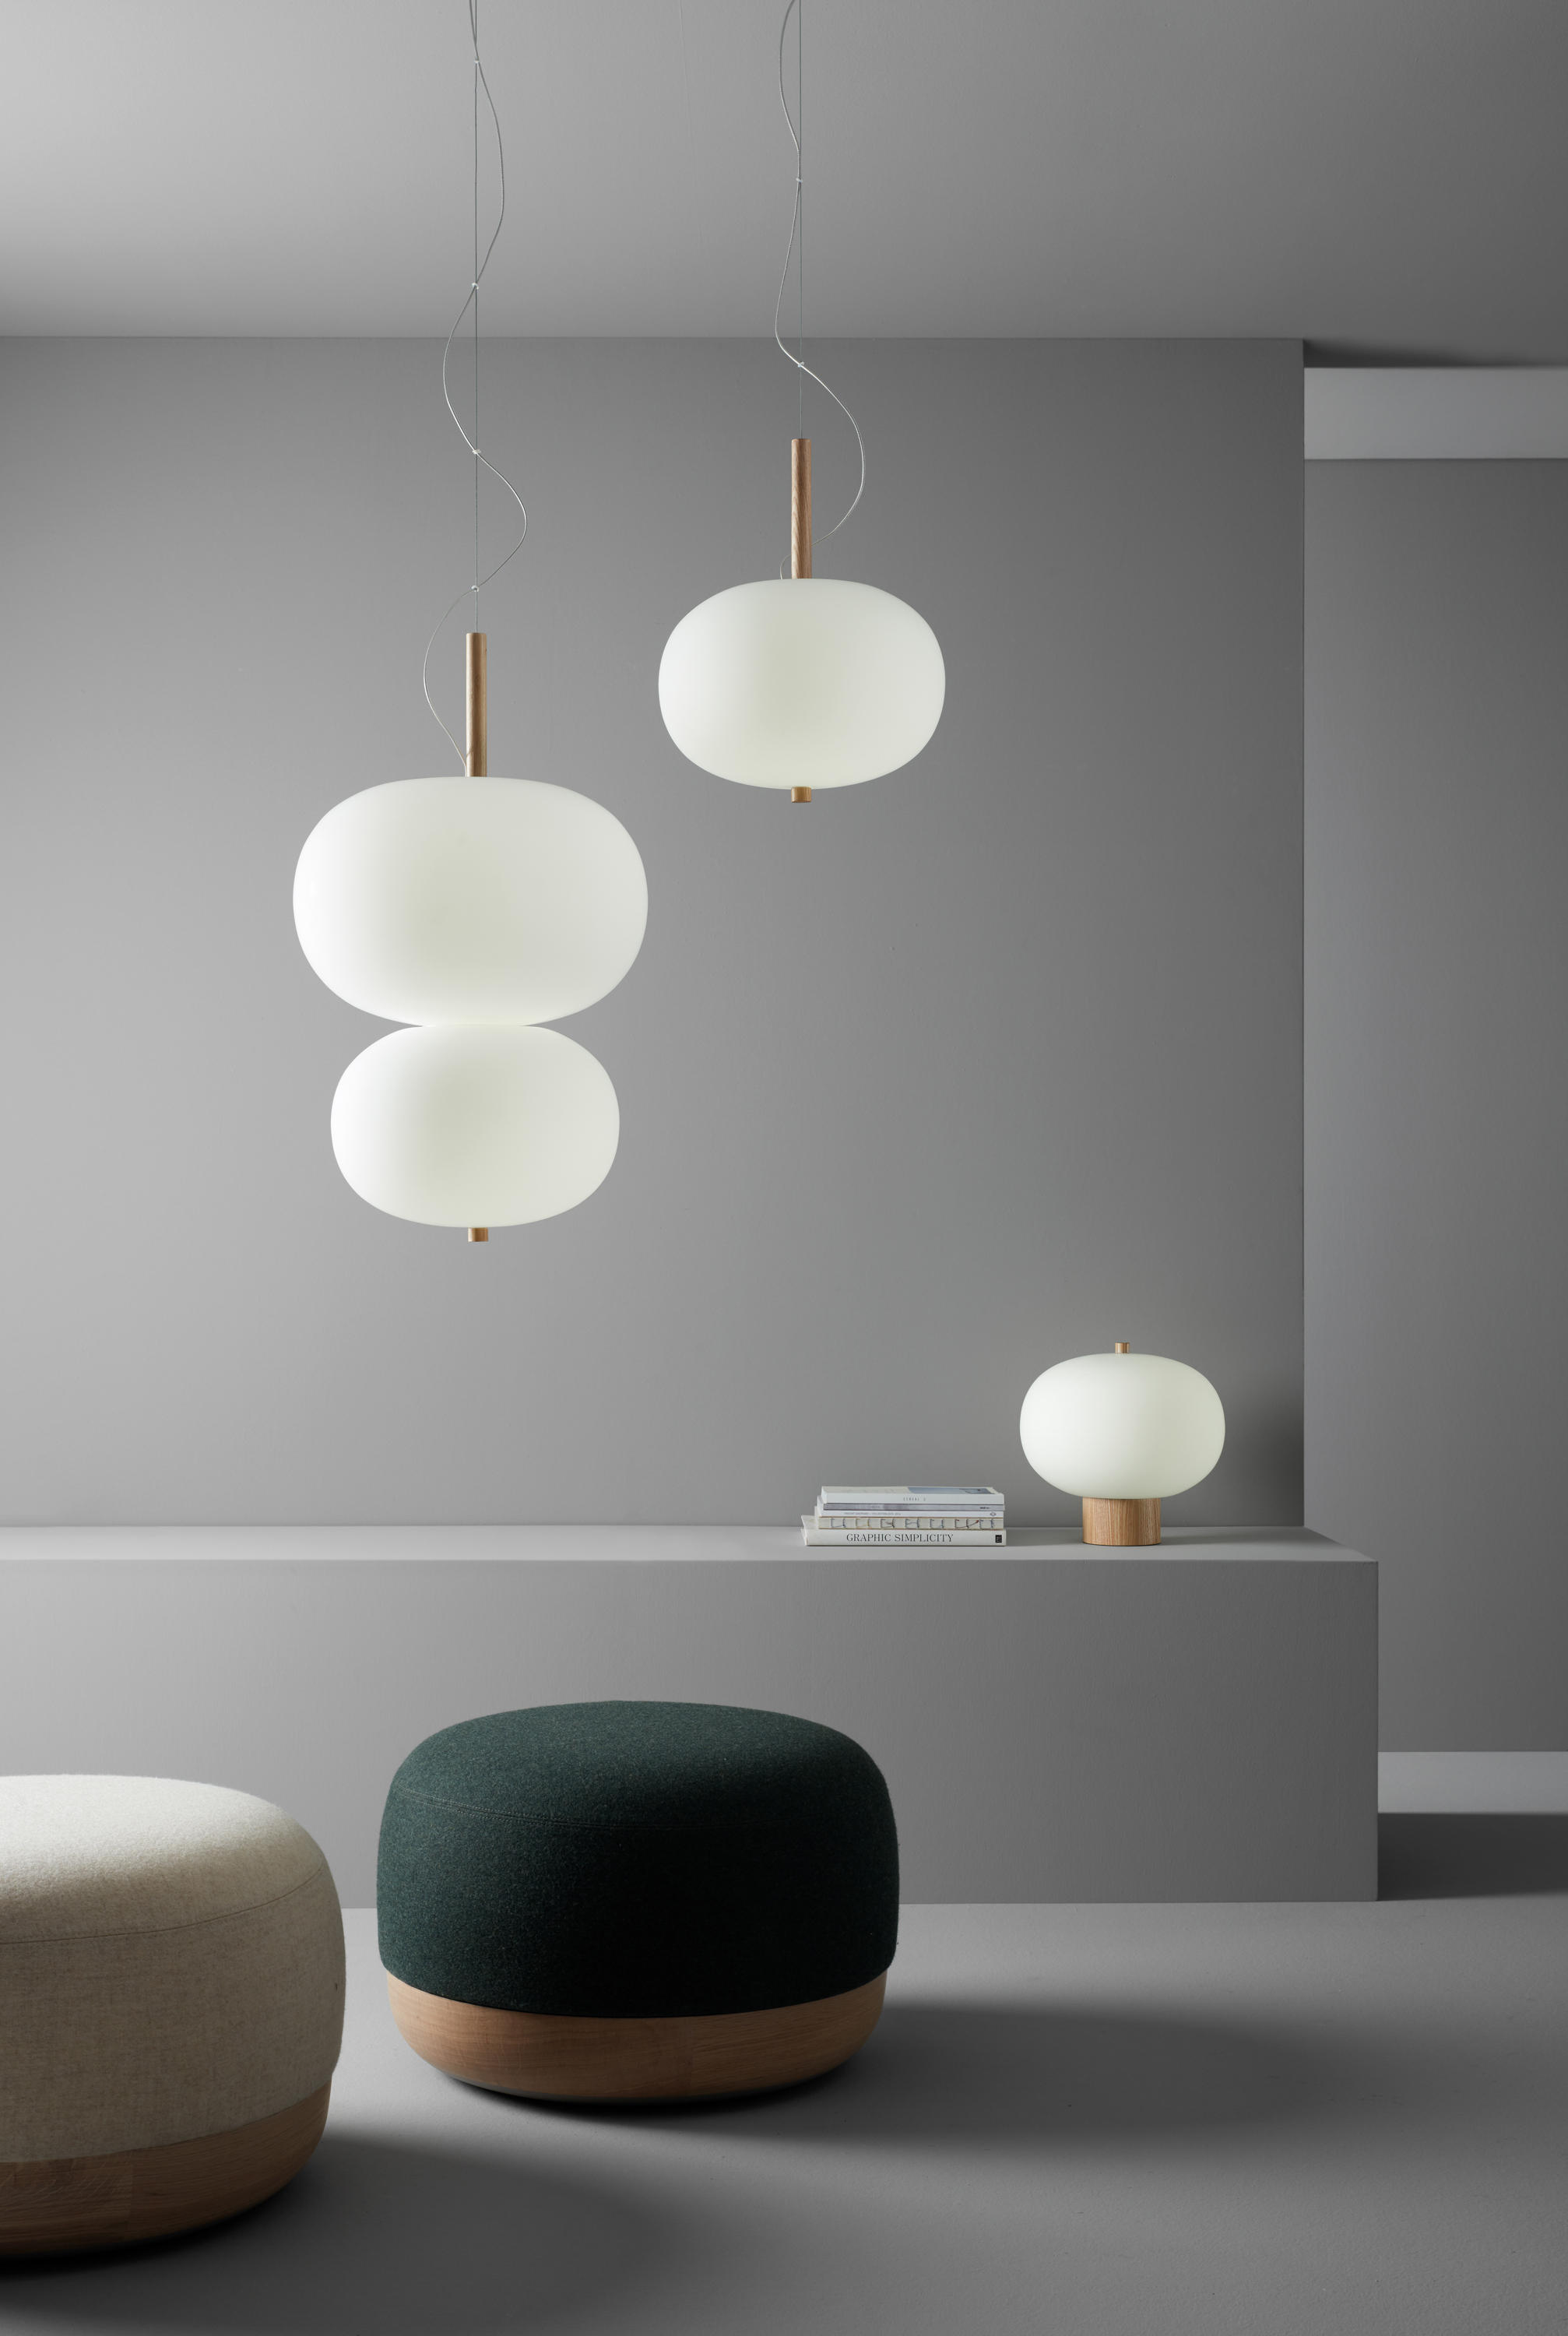 Suspension Verre Boule Ilargi Pendant - Suspensions De Grok | Architonic